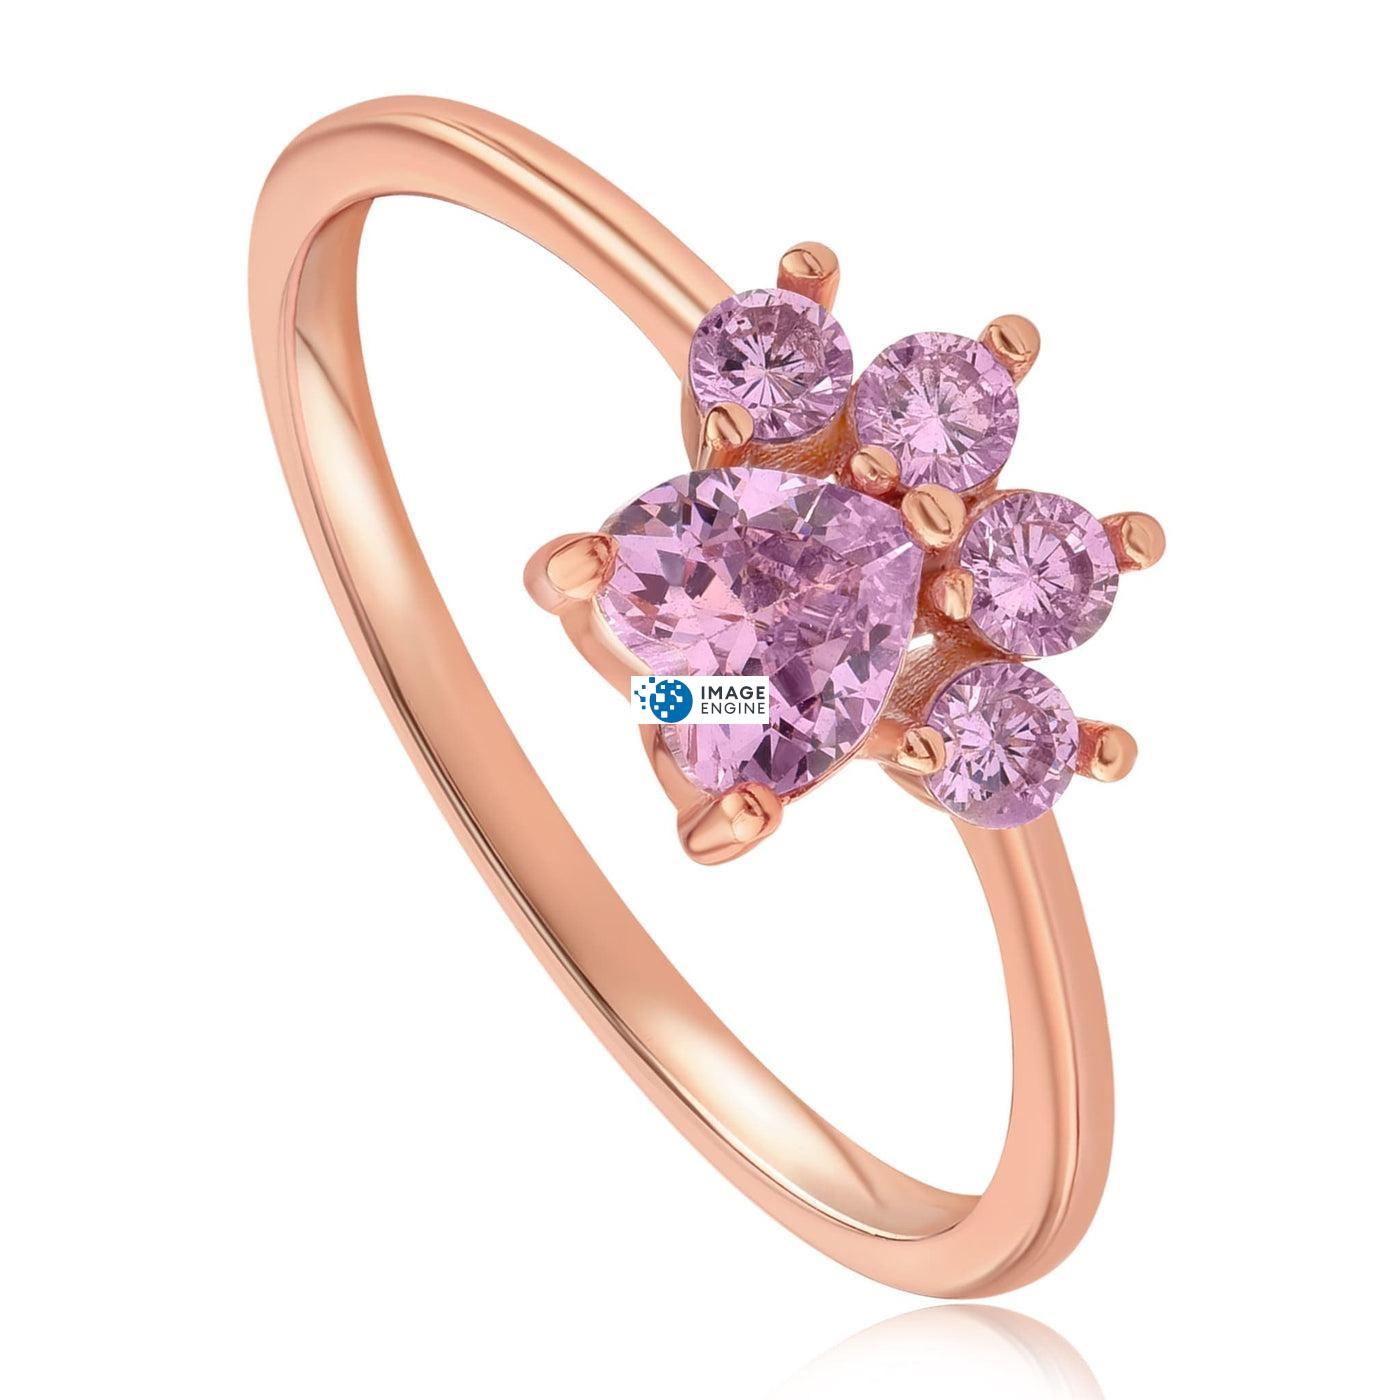 Bella Paw Rose Quartz Ring - Three Quarter View - 18K Rose Gold Vermeil